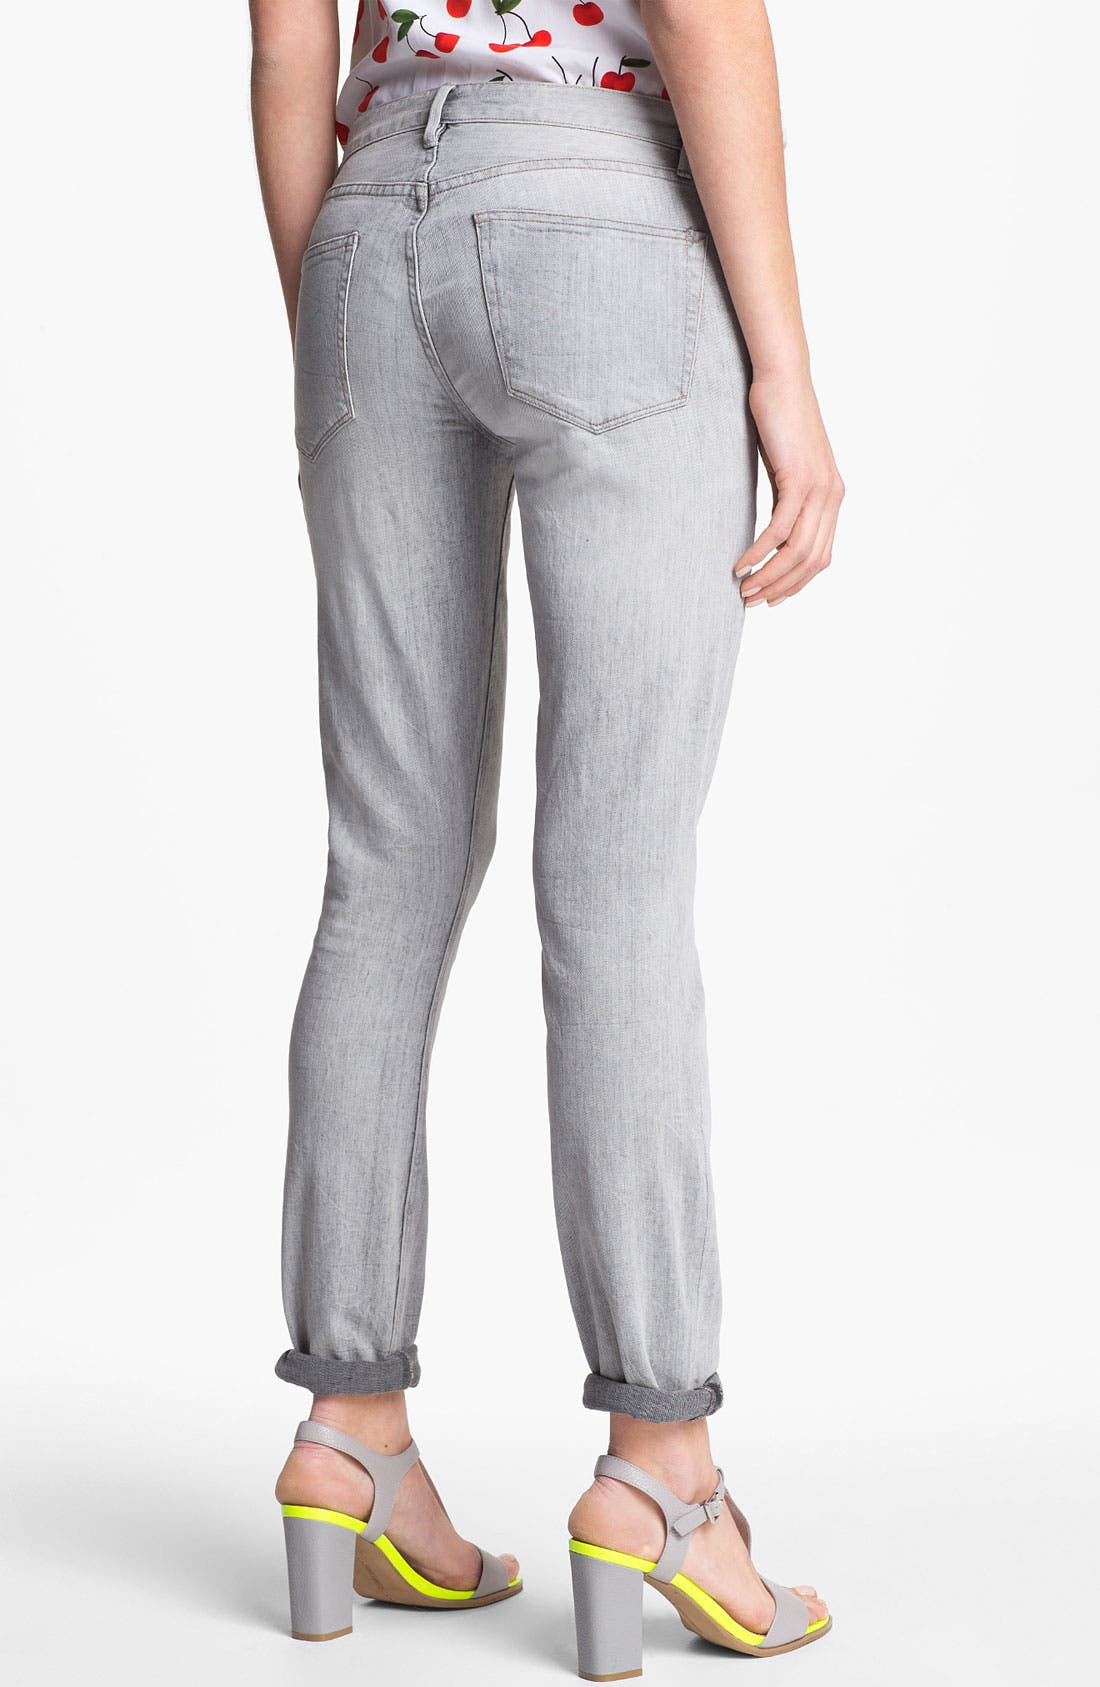 Alternate Image 2  - Two by Vince Camuto 'Shorty' Jeans (Sandy Grey)